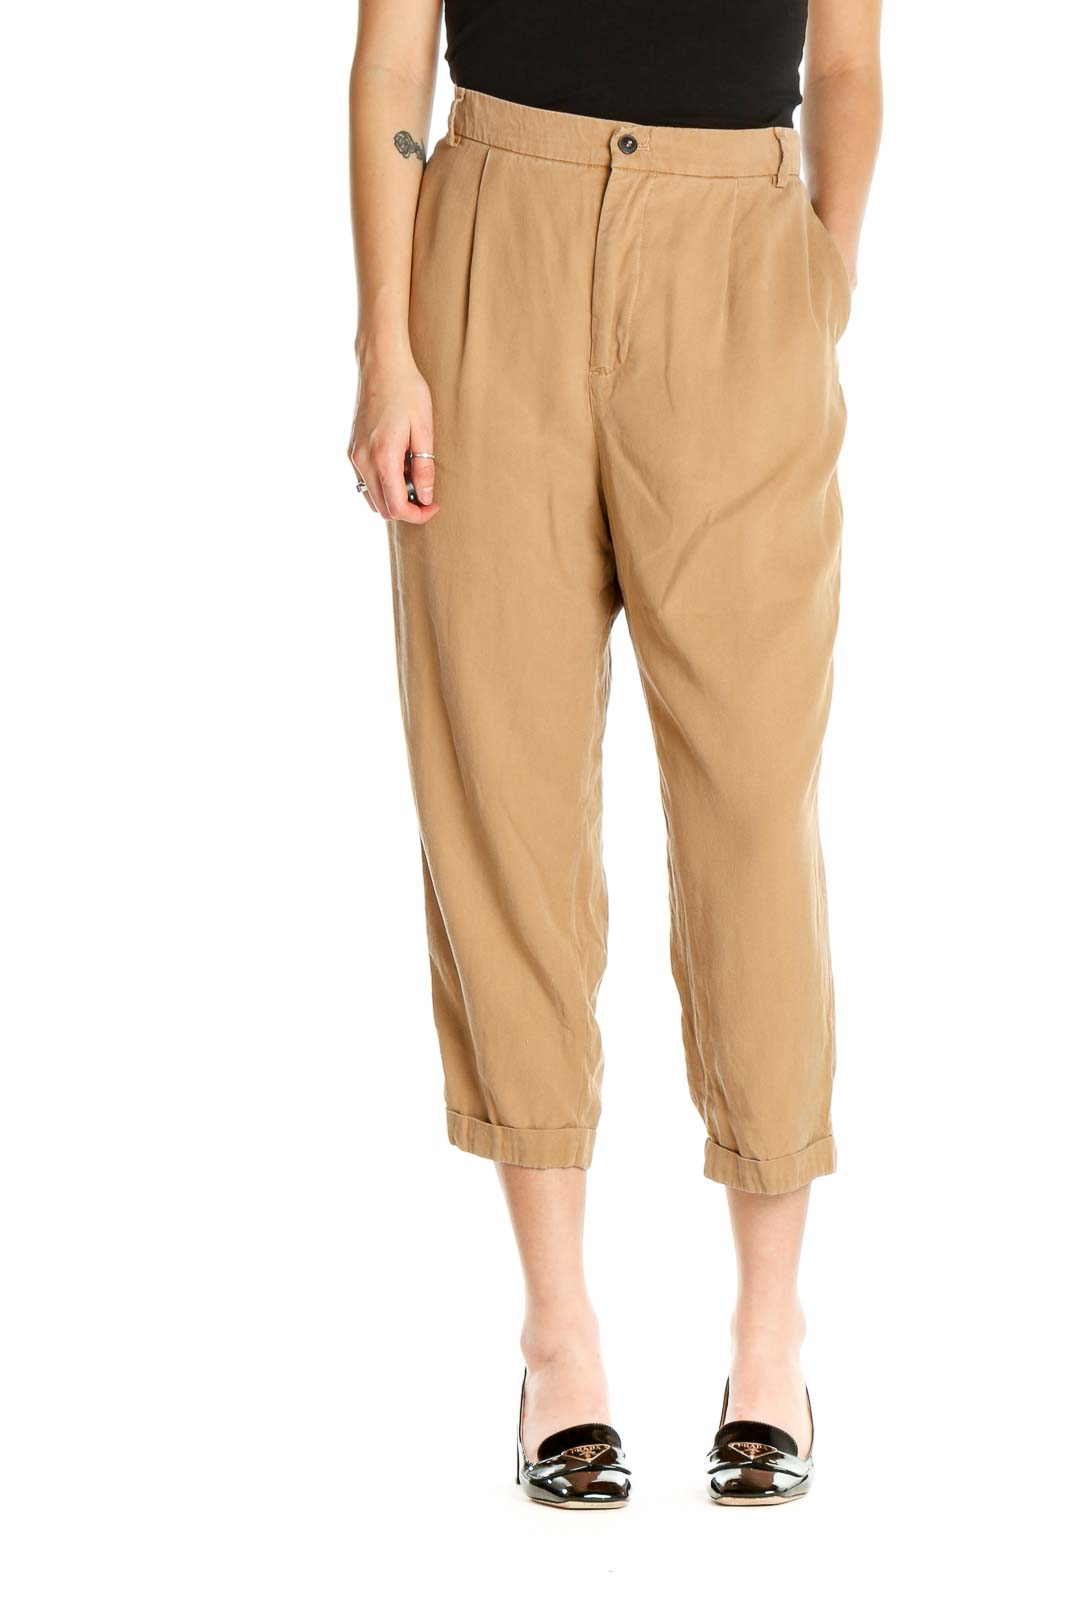 Beige Solid All Day Wear Sweatpants Front